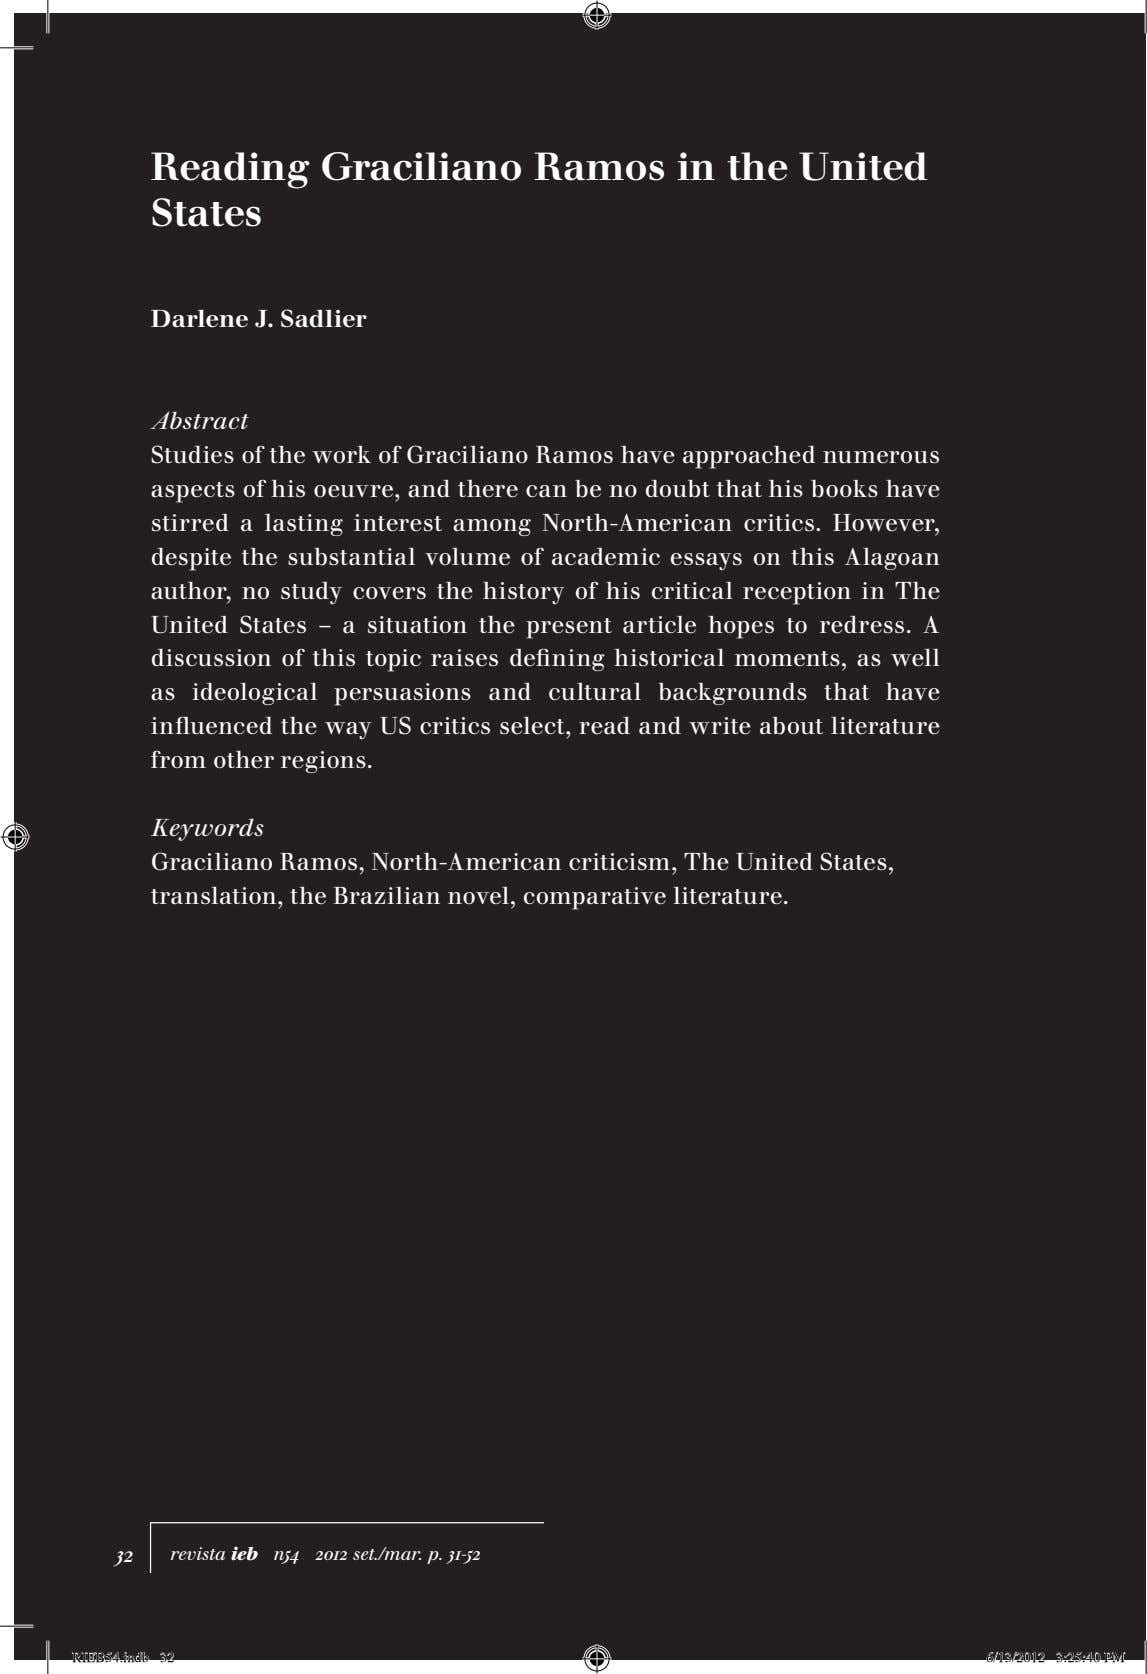 Reading Graciliano Ramos in the United States Darlene J. Sadlier Abstract Studies of the work